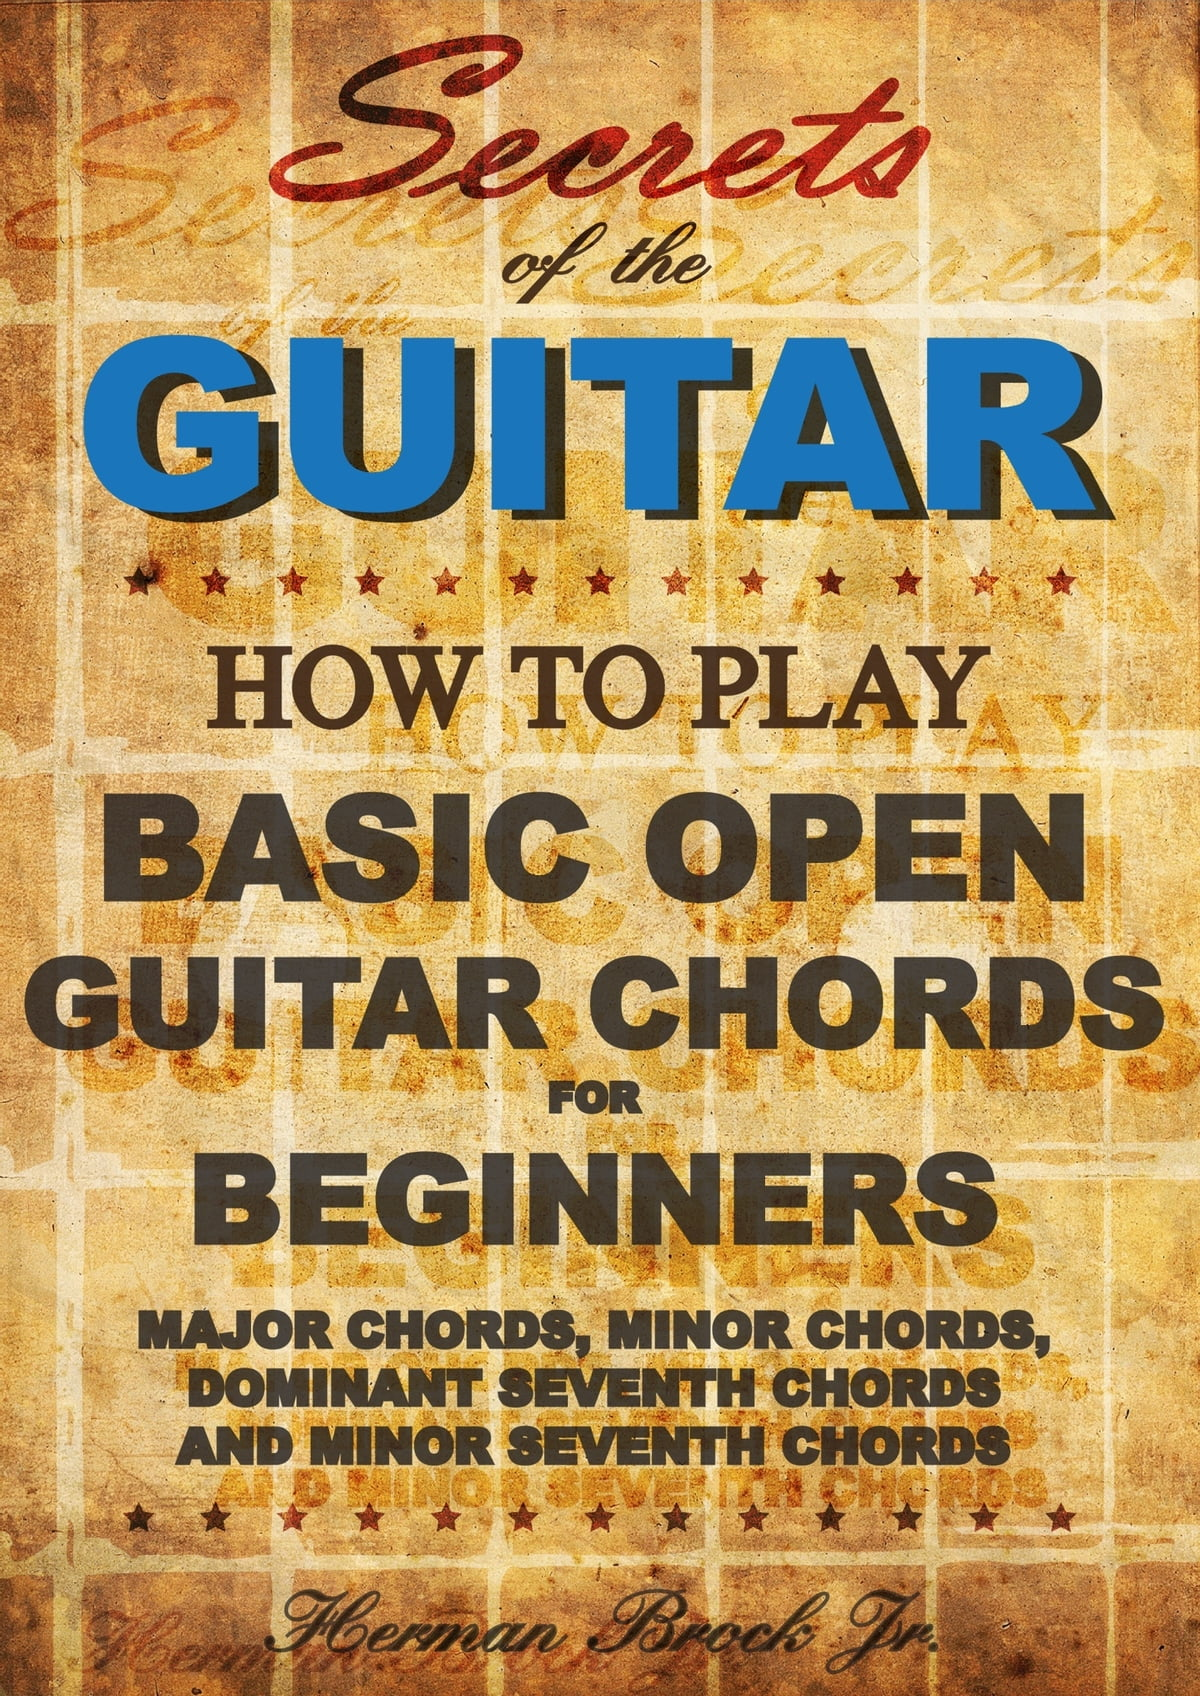 guitar chords learn how to play basic open guitar chords for